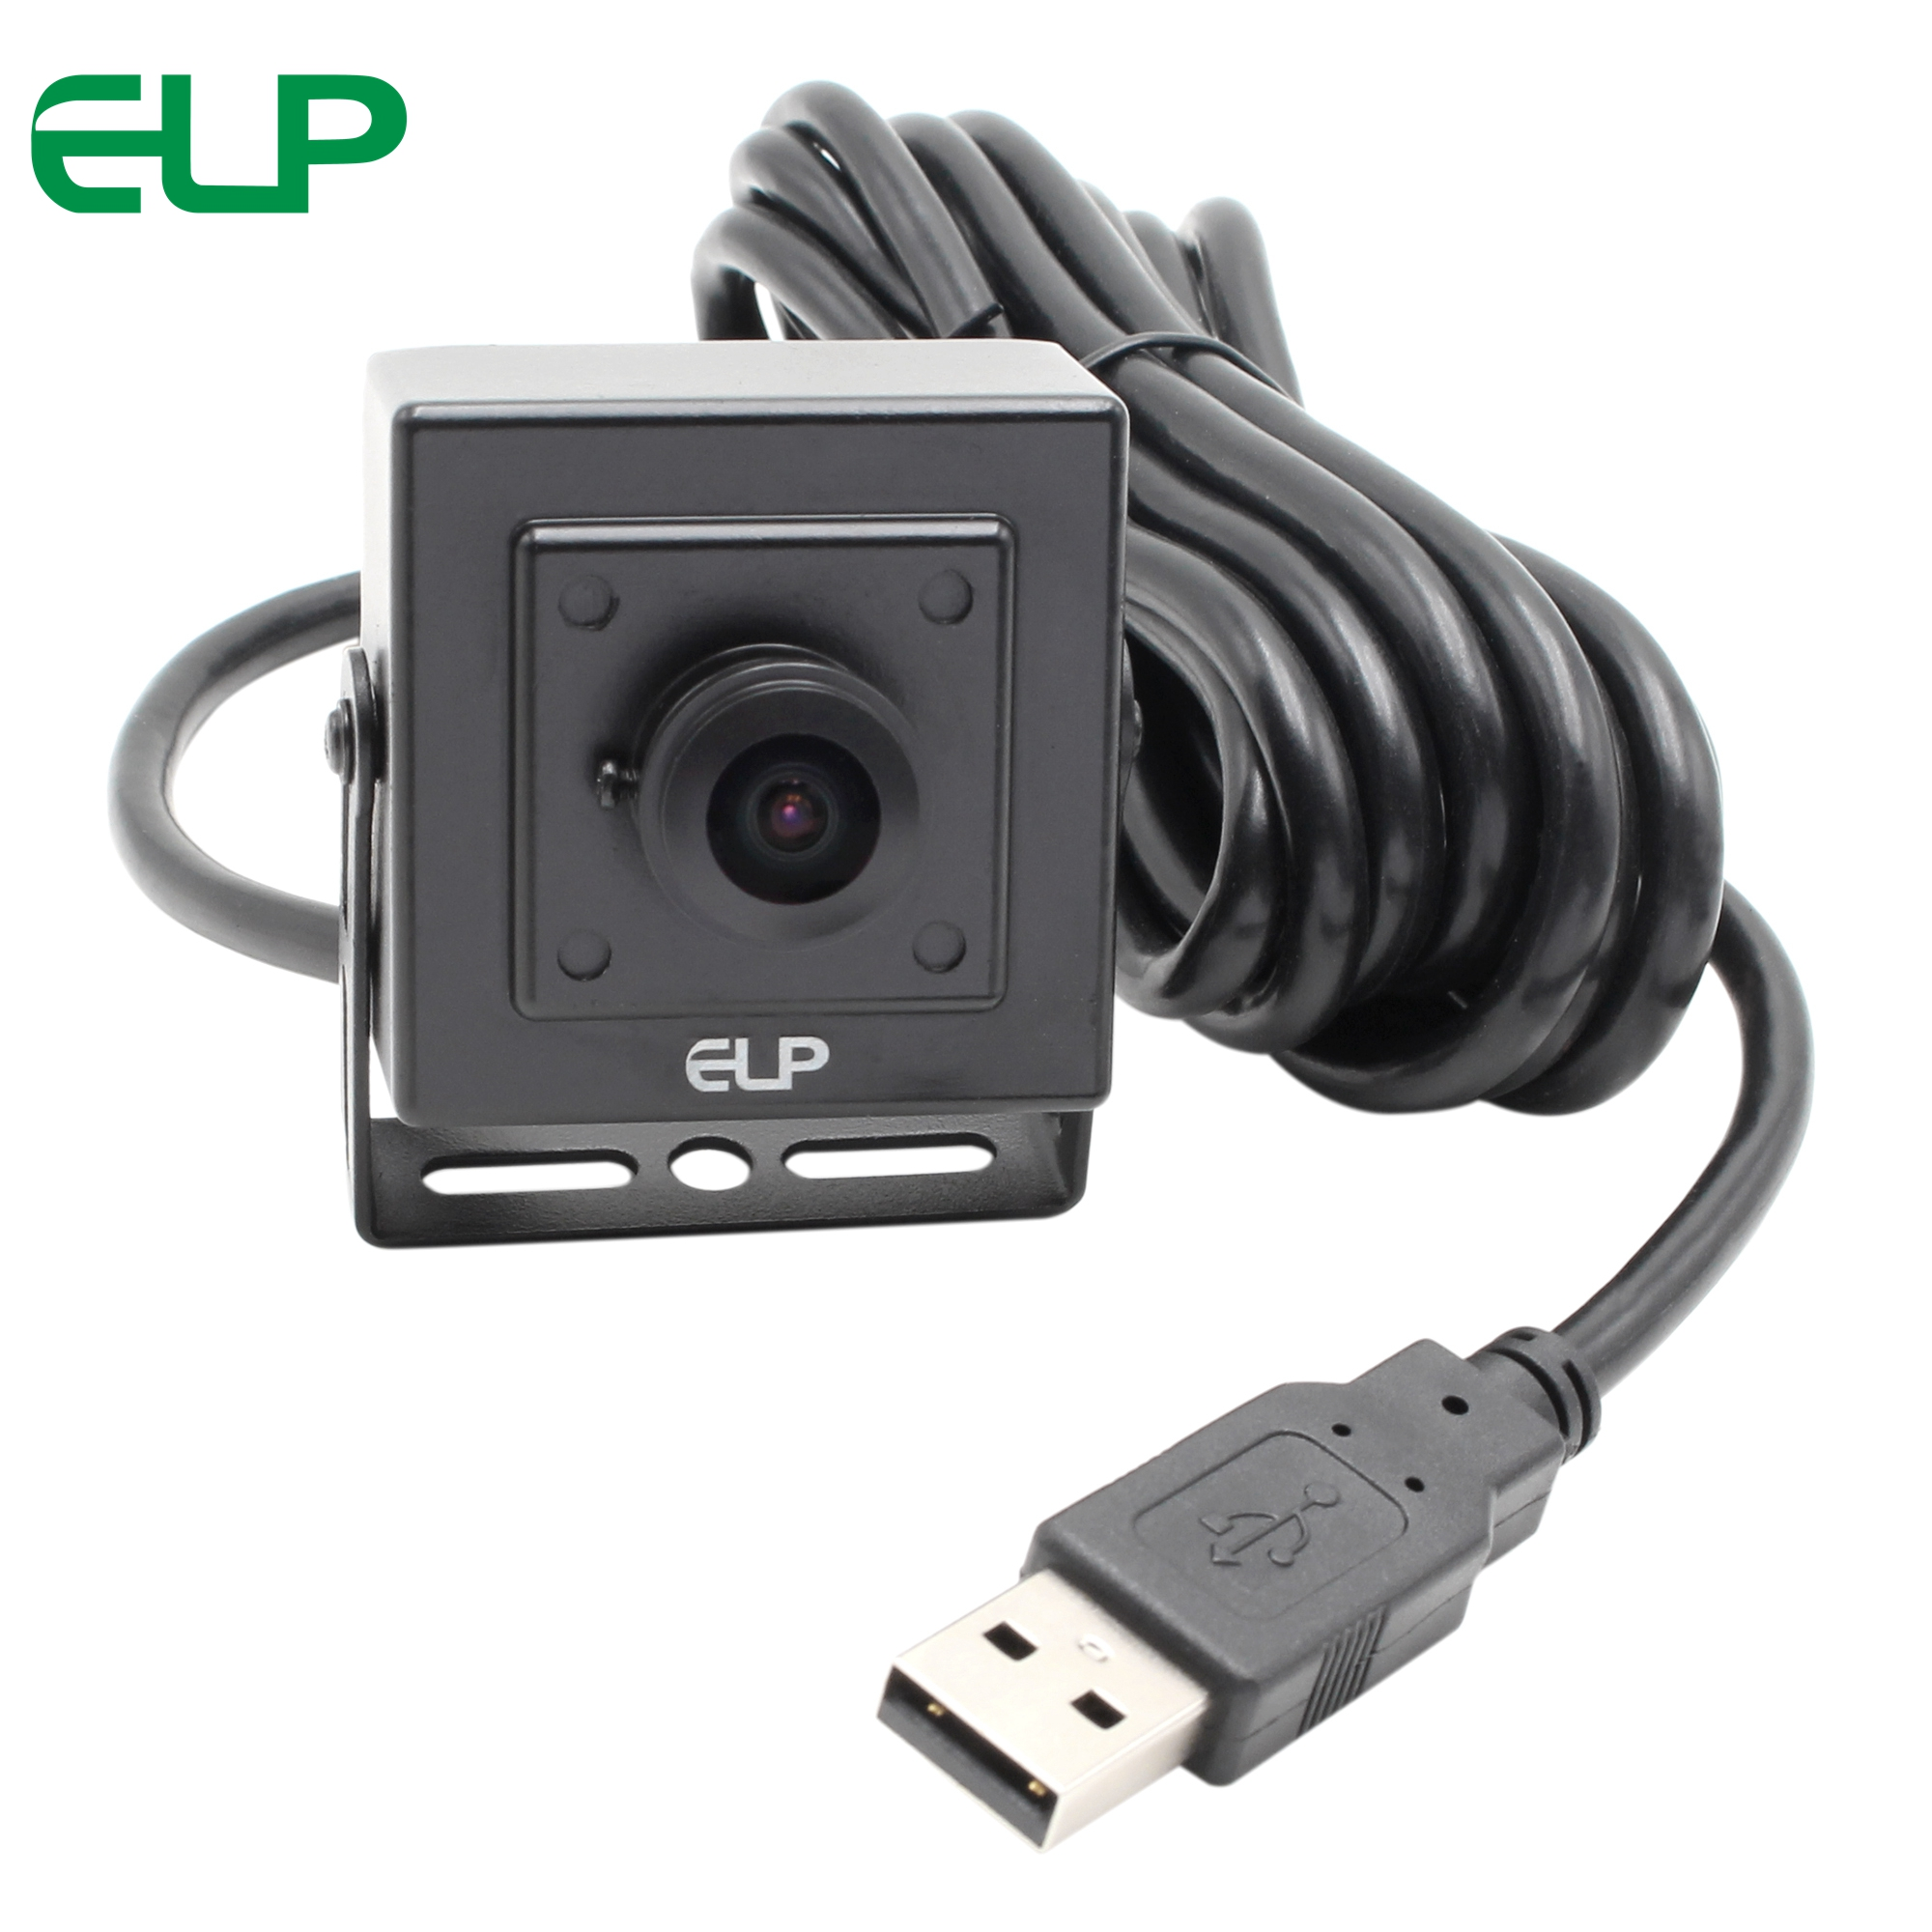 ELP 5mp 2592x1944 High resolution mini HD Webcam Driverless wide angle fisheye lens CCTV usb camera for Android,Linux,Windows